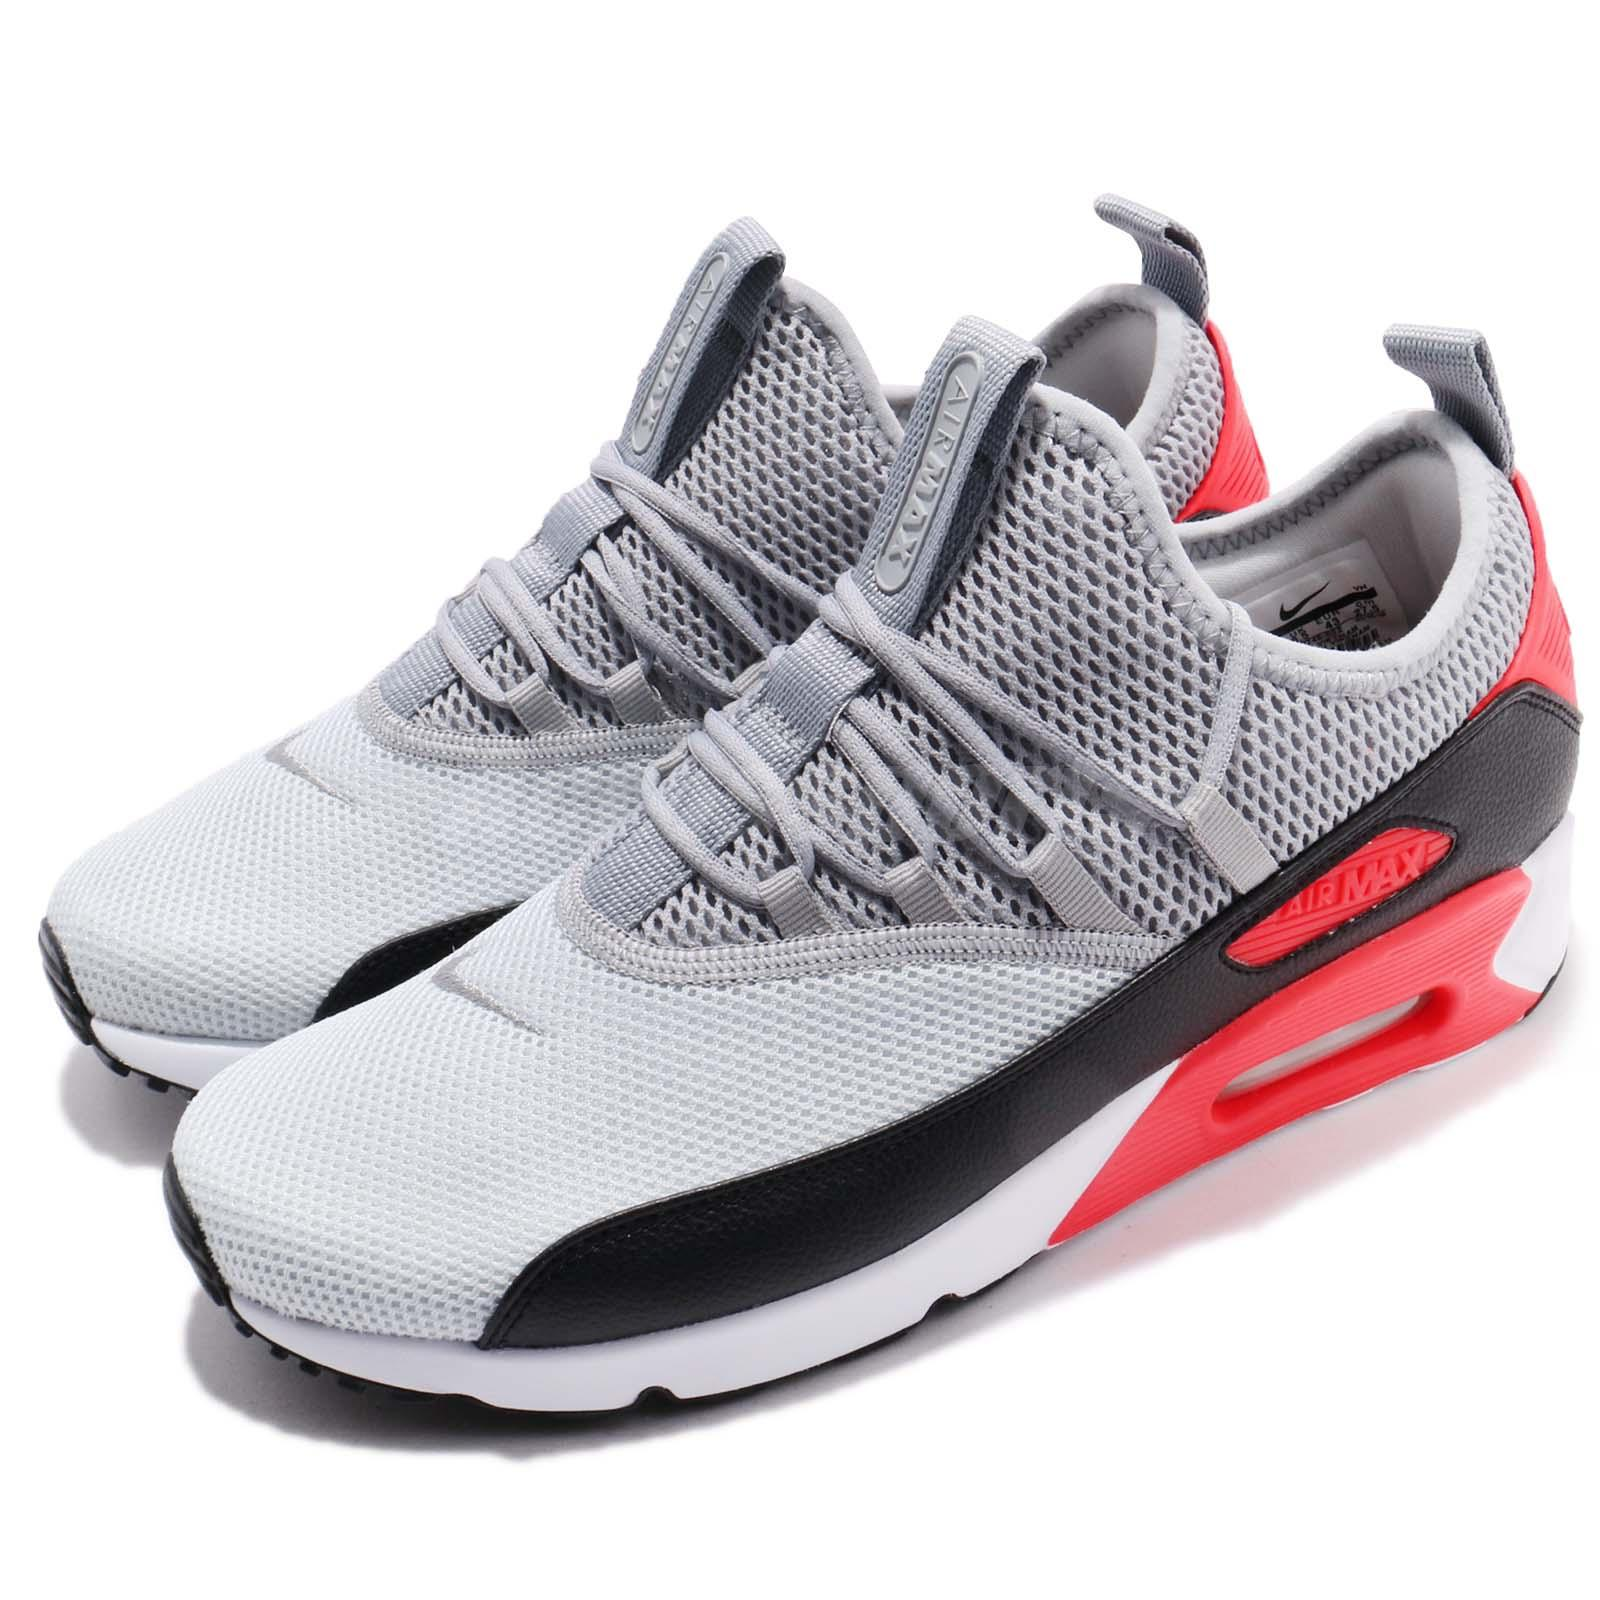 new products edeb7 60677 Details about Nike Air Max 90 EZ Grey Black Infrared Red Men Running Shoes  Sneakers AO1745-002